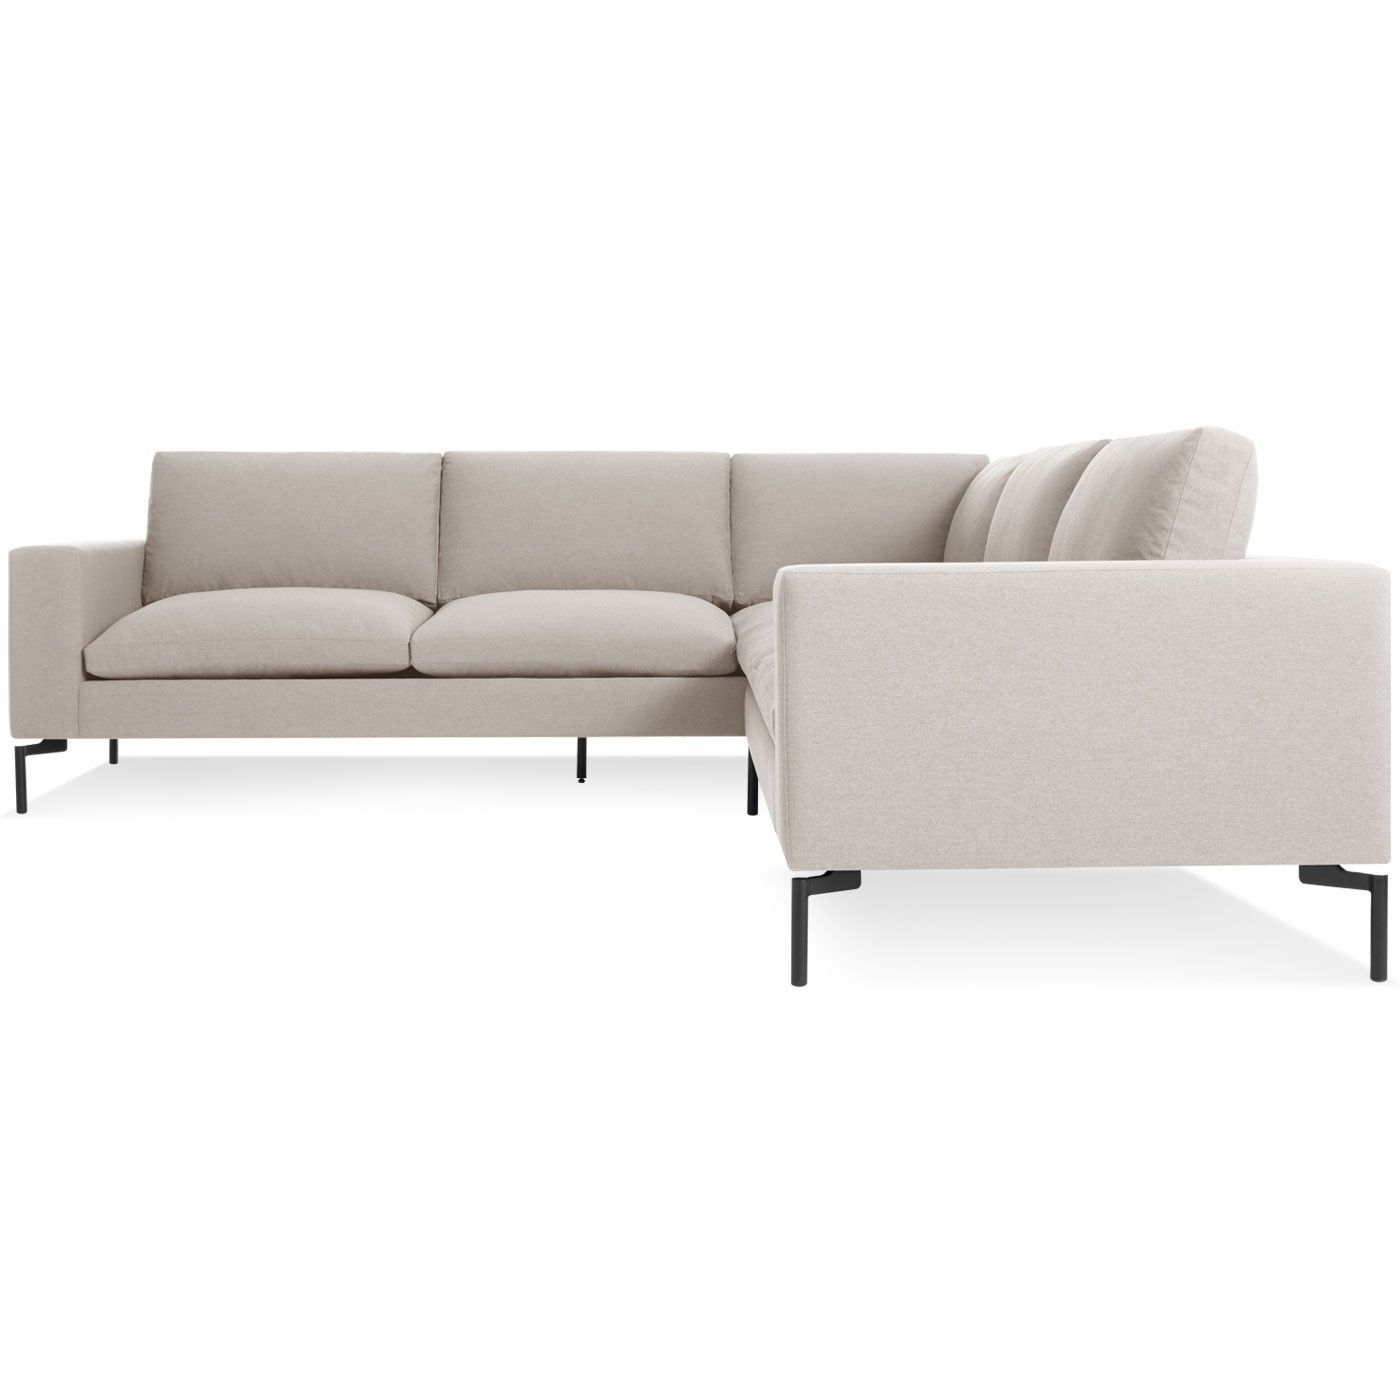 new standard l shaped sectional a nixon sand black 2 $3 998 00